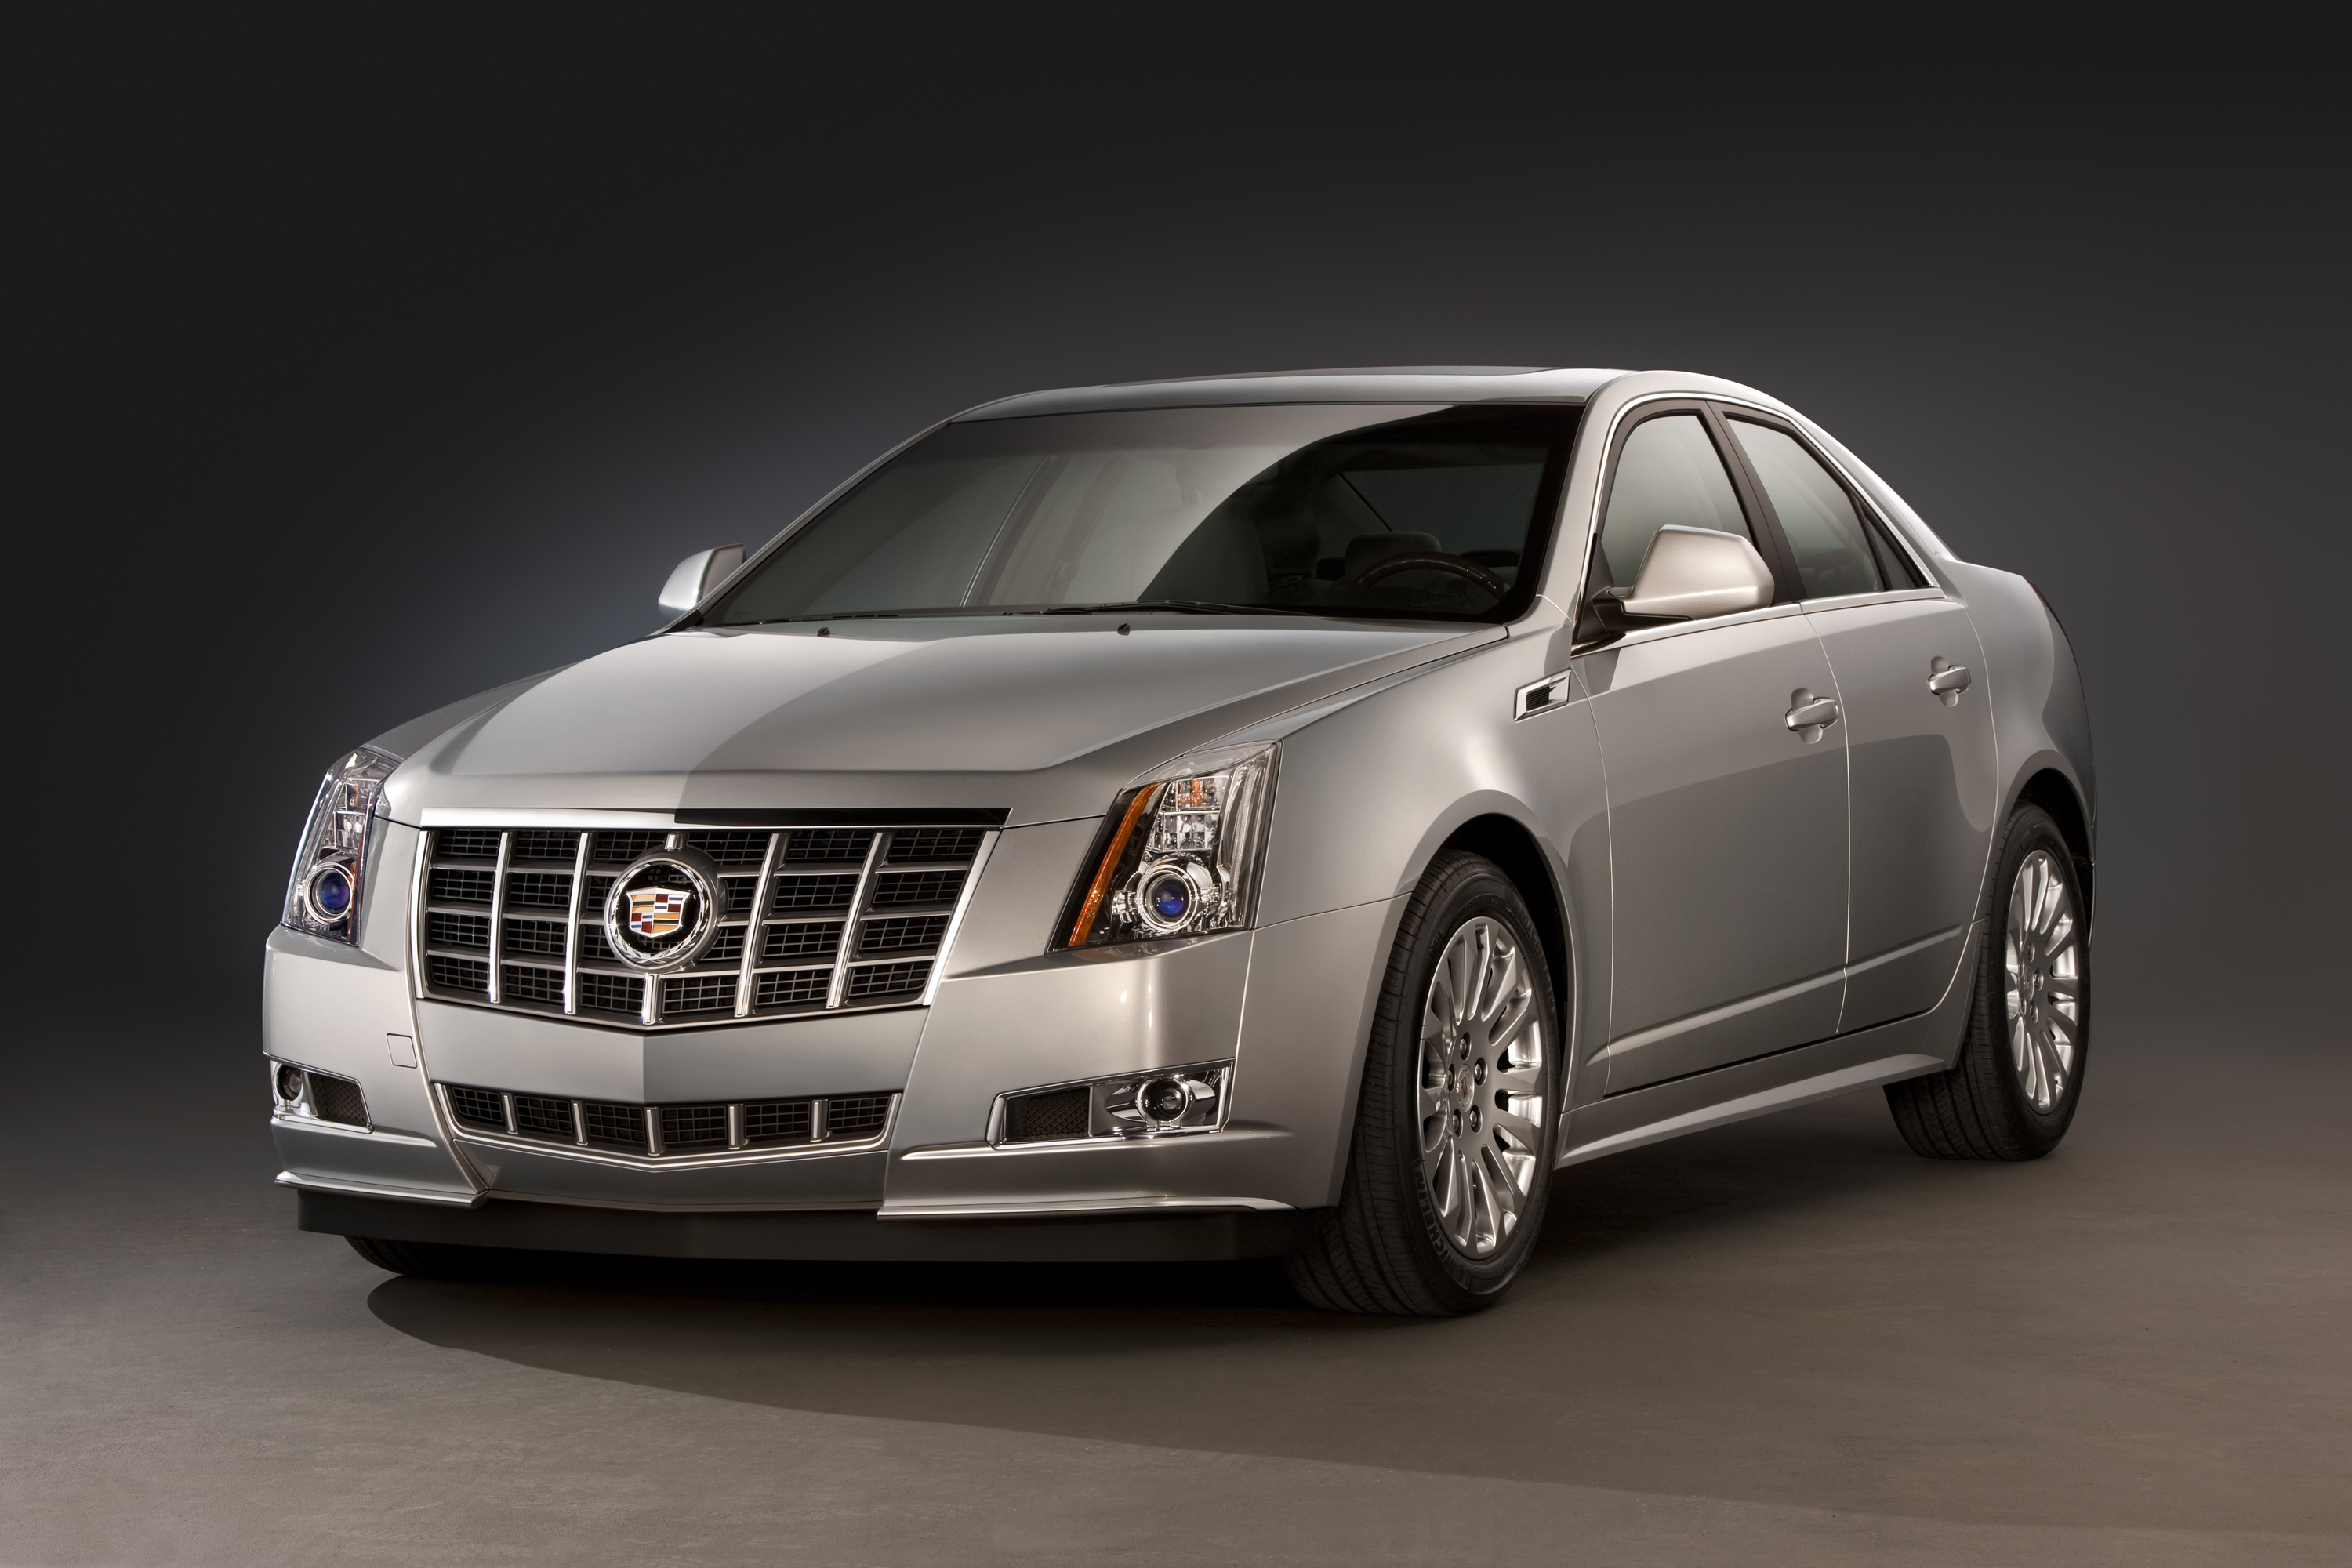 2013 Cadillac CTSsedan 019 gm announces five safety recalls  at cos-gaming.co